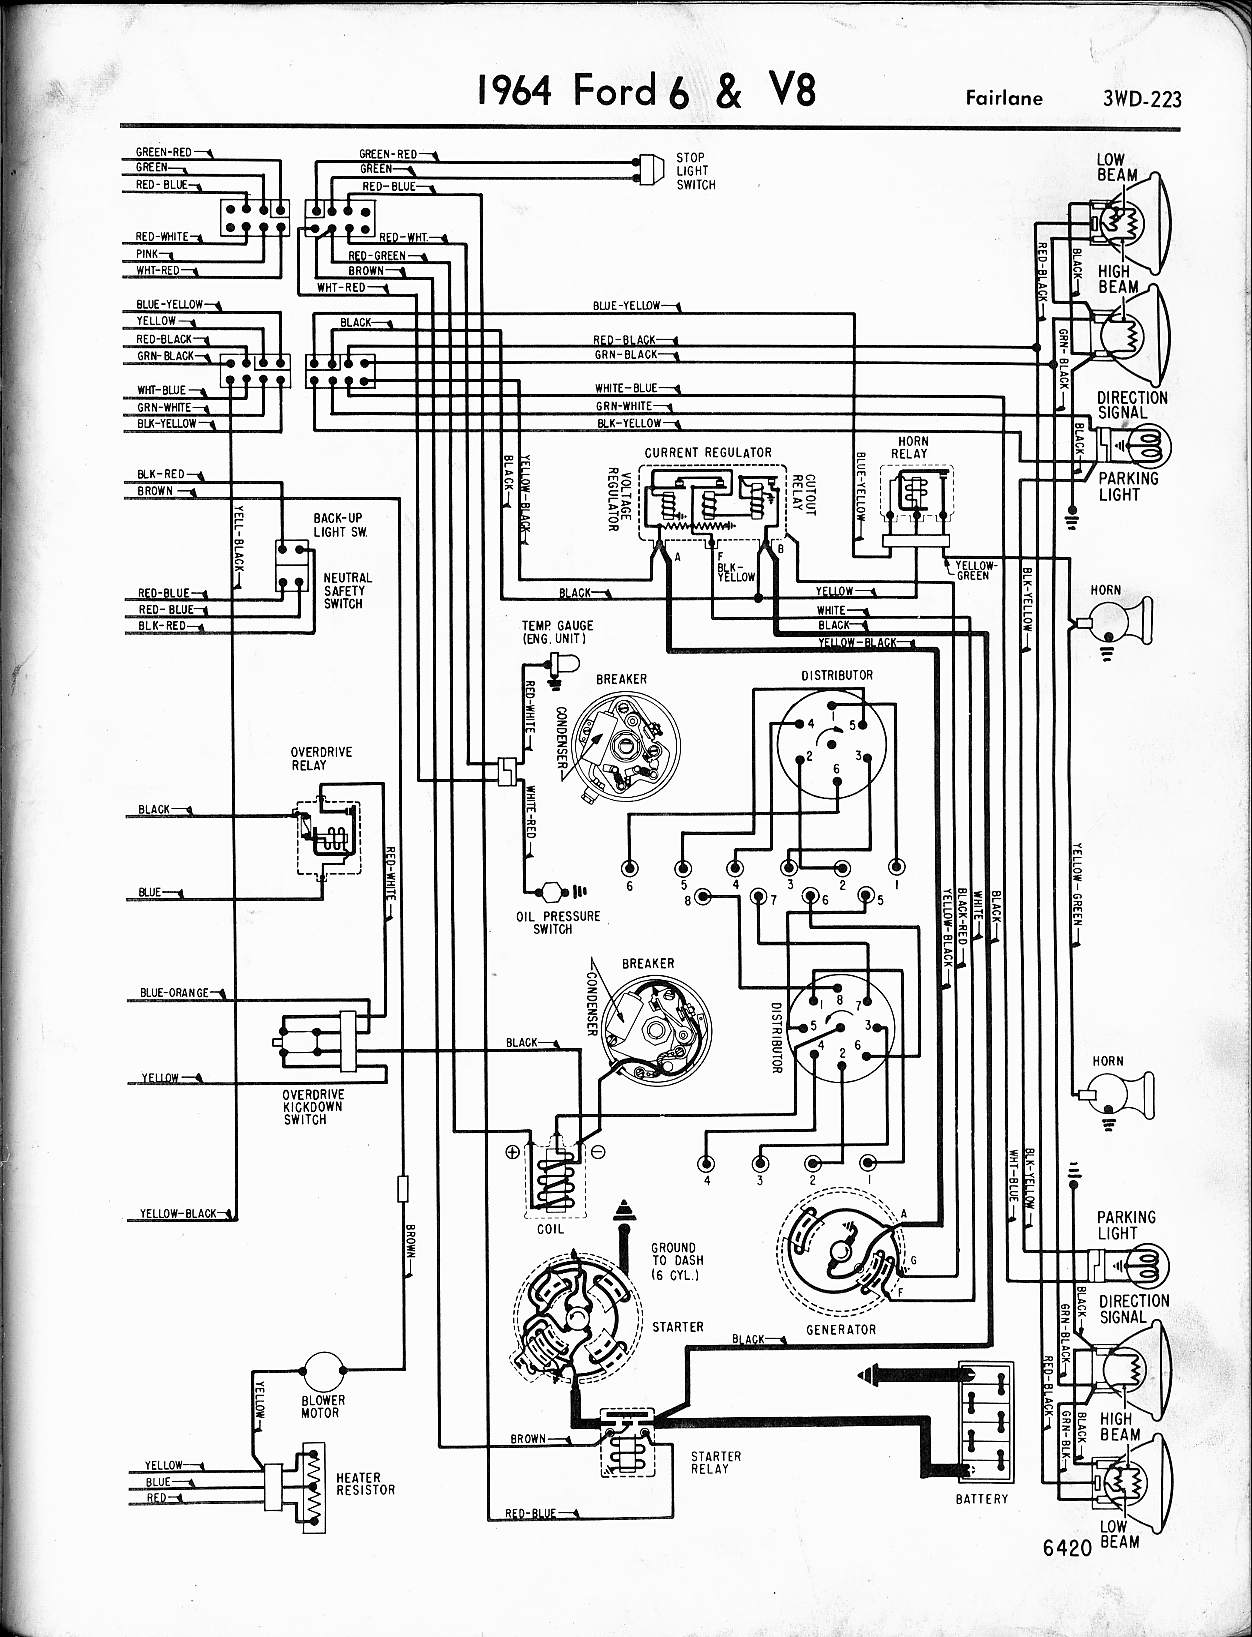 MWire5765 223 1966 ford fairlane wiring diagram 1966 ford fairlane convertible 1959 ford wiring diagram at reclaimingppi.co